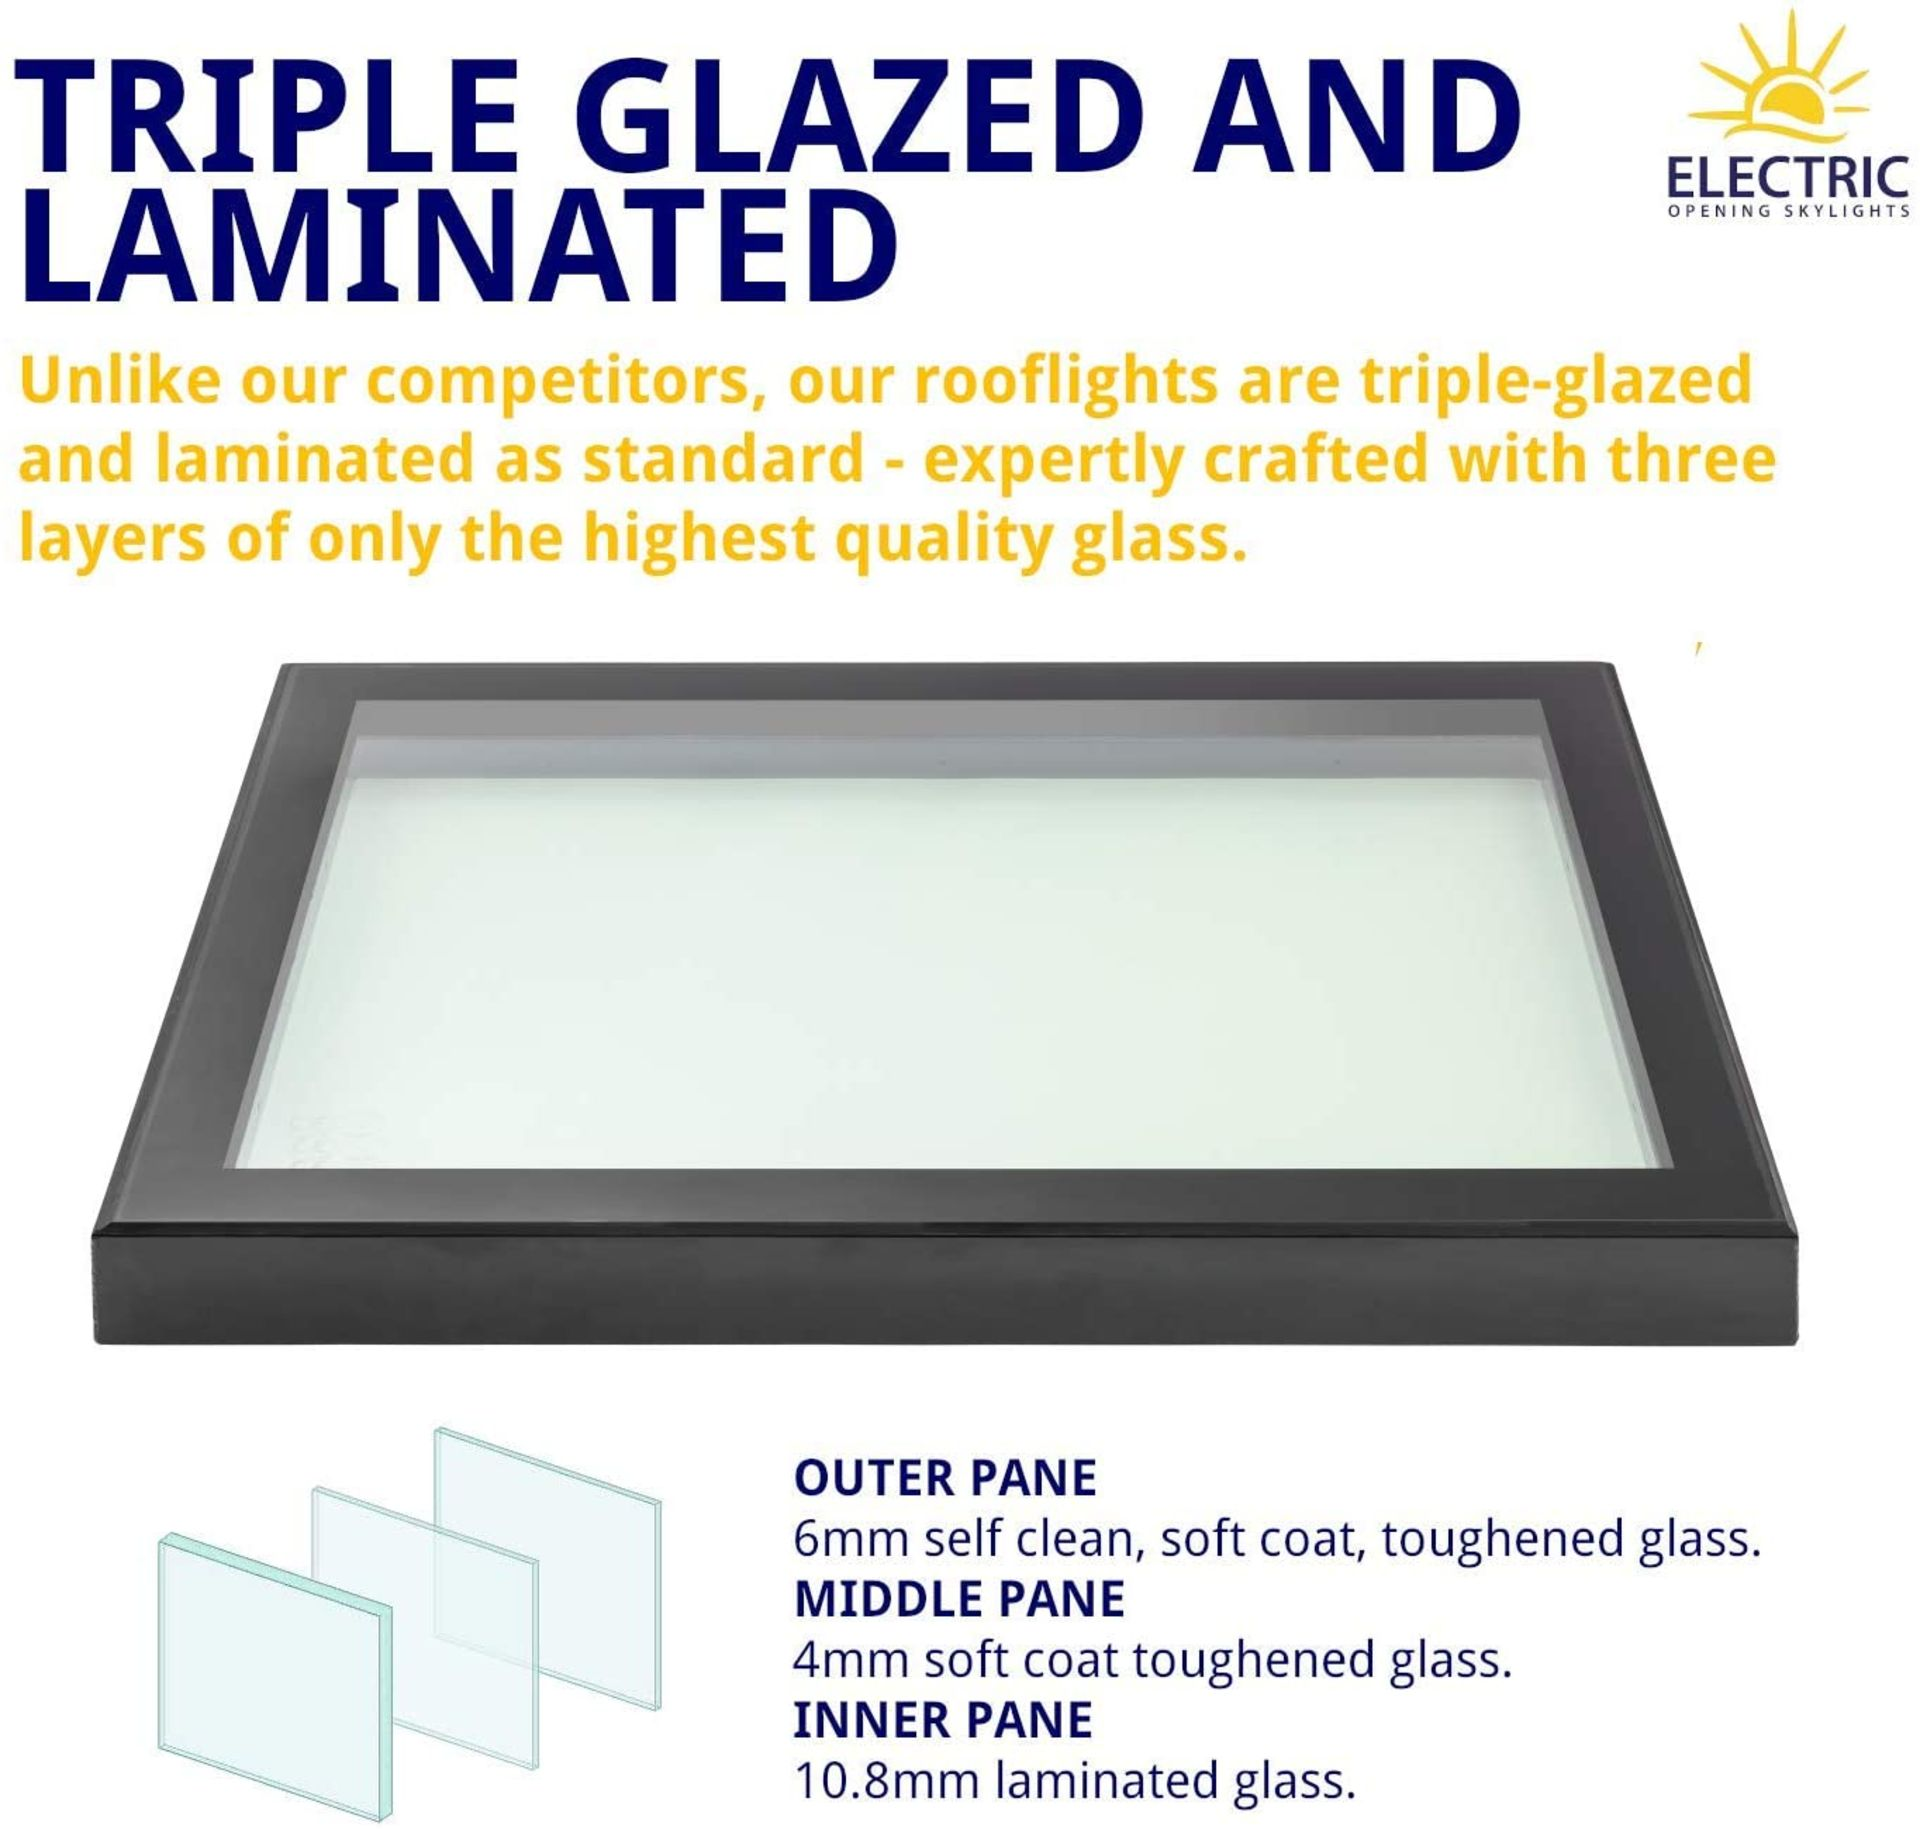 Panoroof (EOS) Fixed Aluminium Triple-Glazed Laminated Skylight with Self-Cleaning Glass - - Image 3 of 6